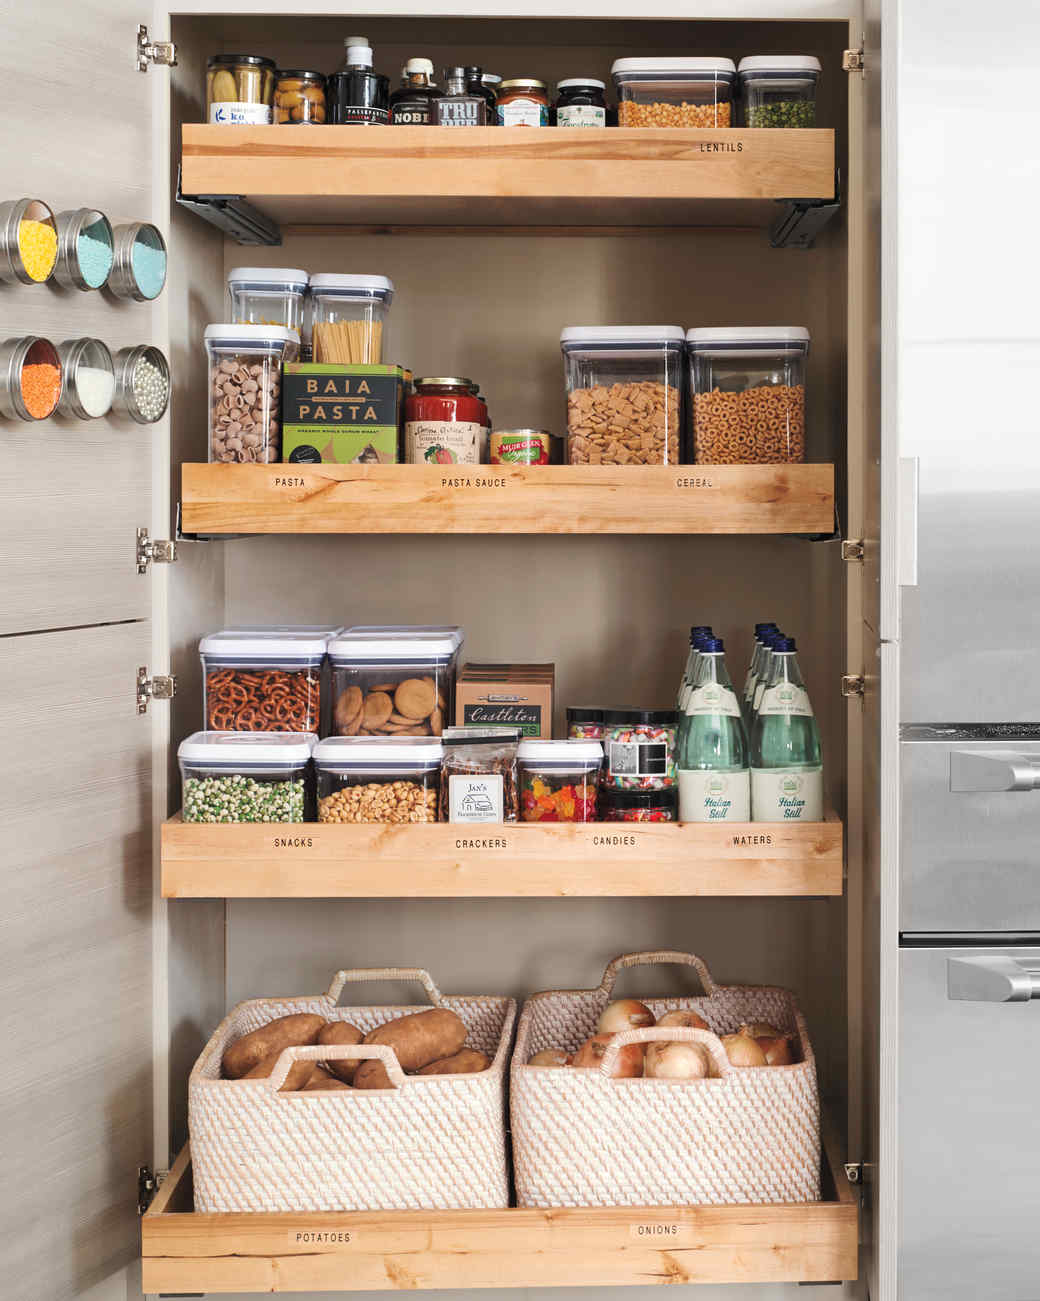 Organize Your Kitchen Cabinets In Easy Steps Martha Stewart - How to organize your kitchen cabinets